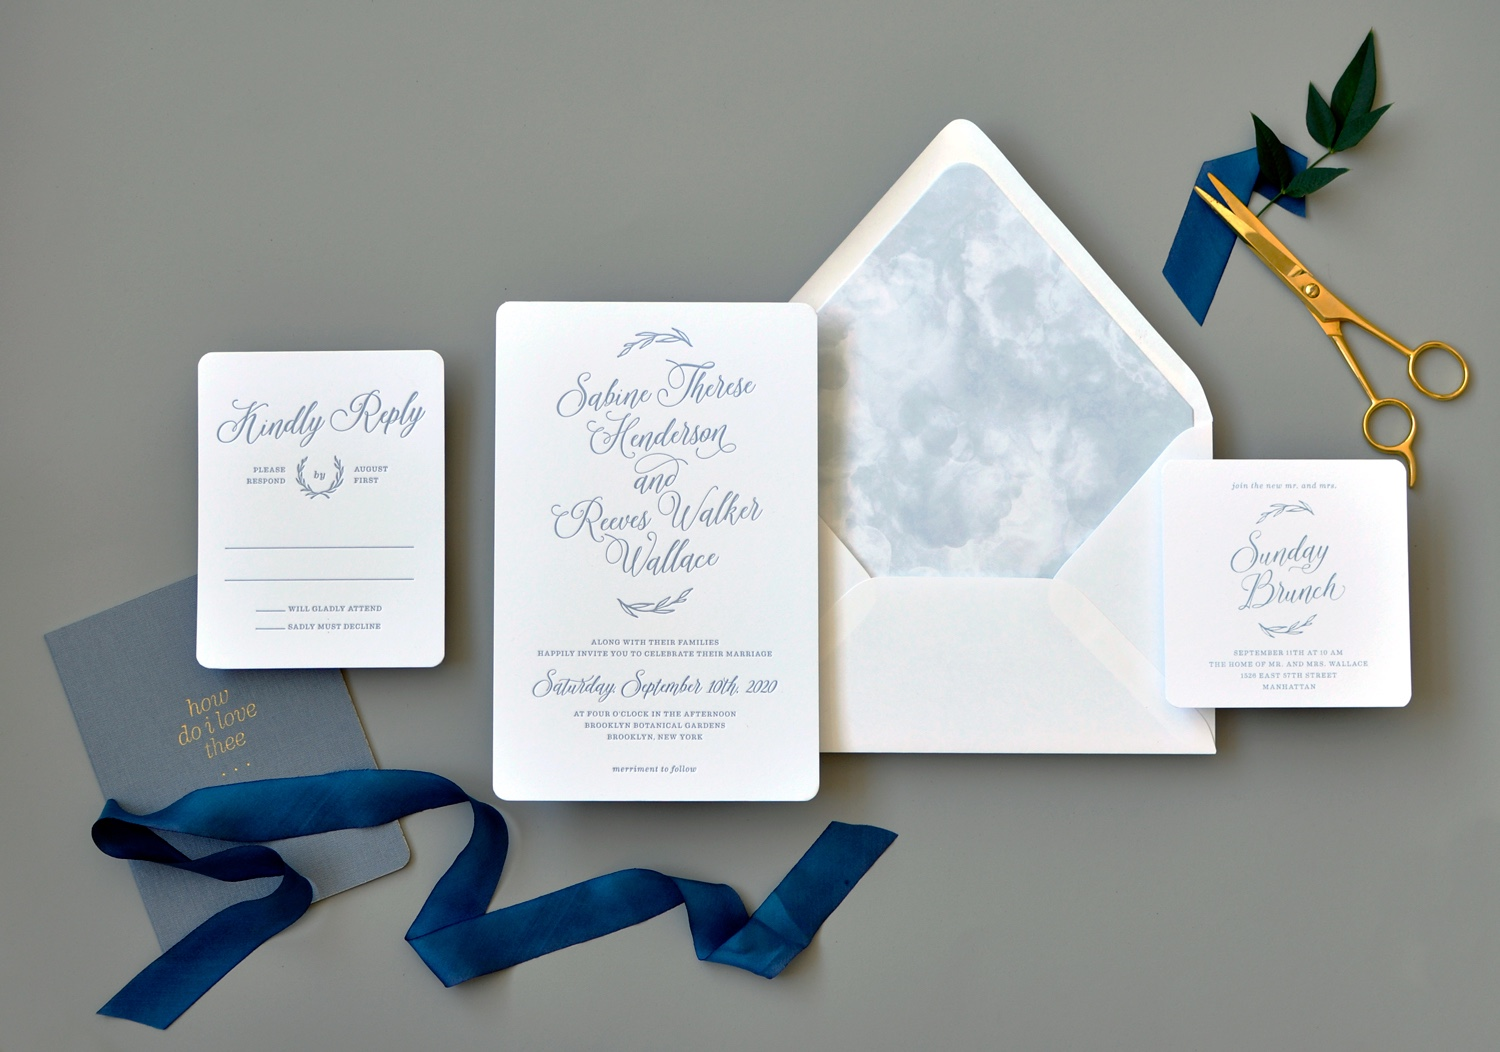 Sabine luxury letterpress wedding invitation features beautiful calligraphy and a watercolor envelope liner in a dusty blue.  Wedgwood blue